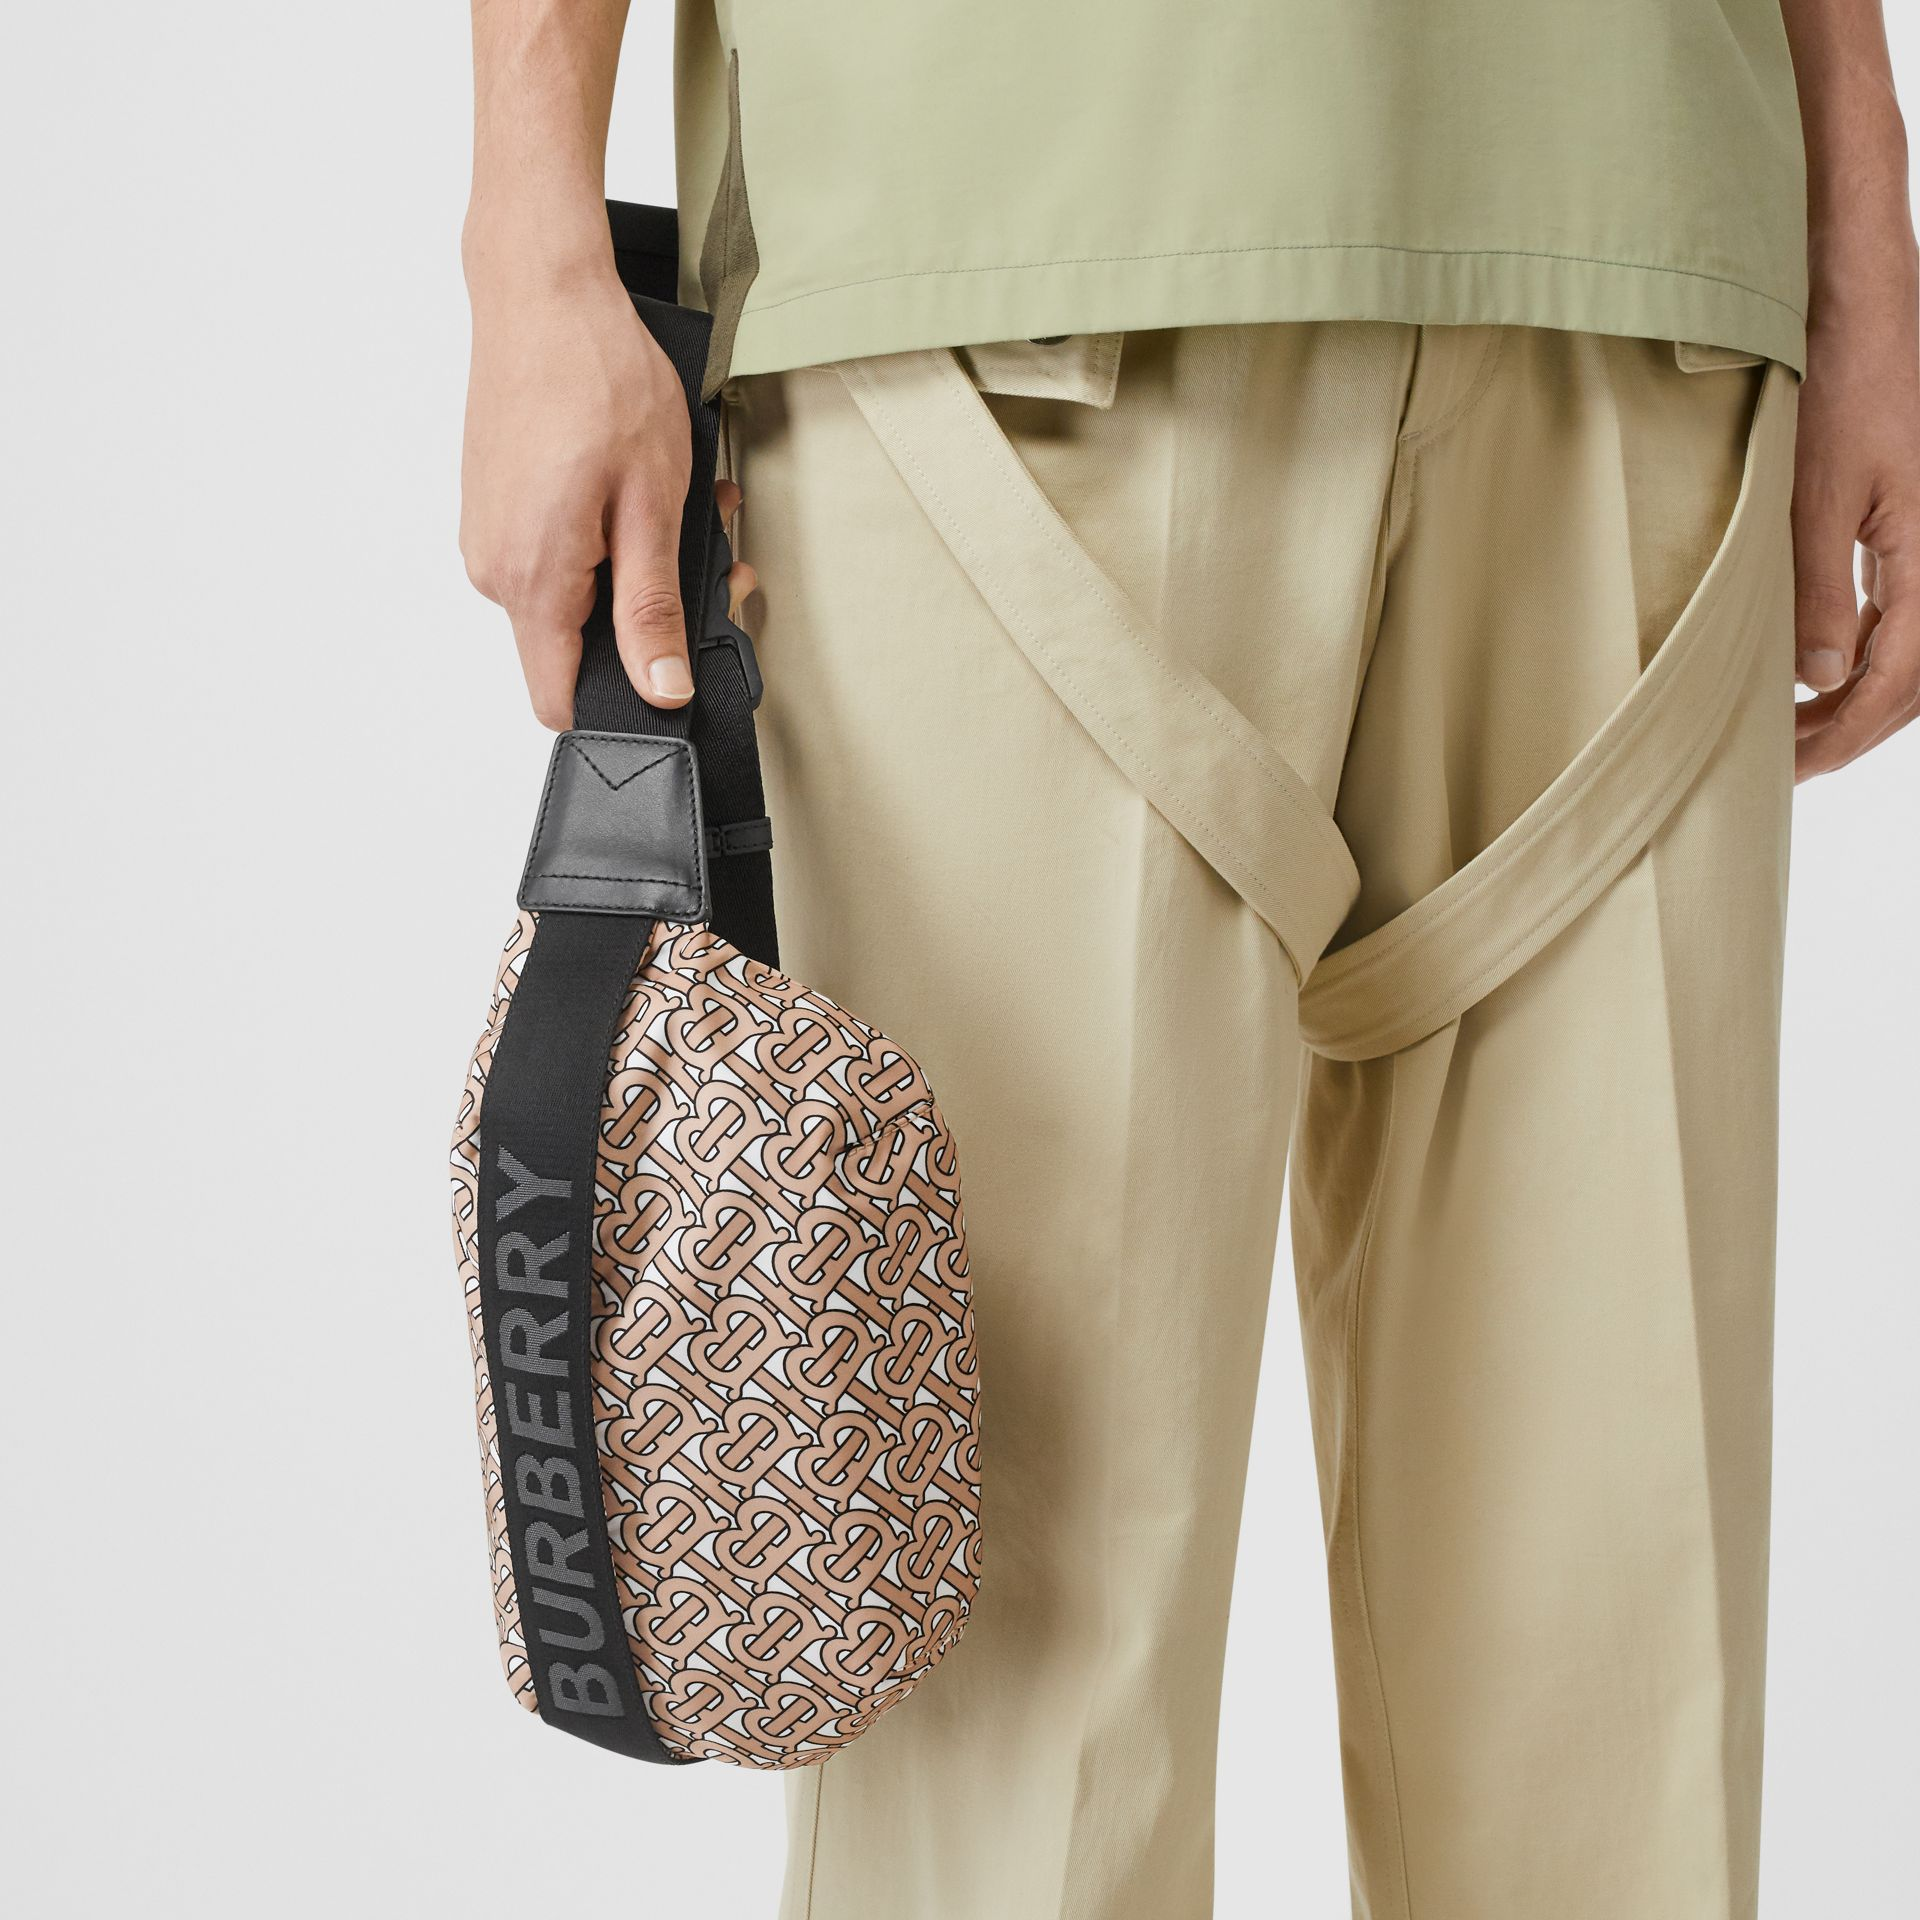 Medium Monogram Print Bum Bag in Beige | Burberry - gallery image 3